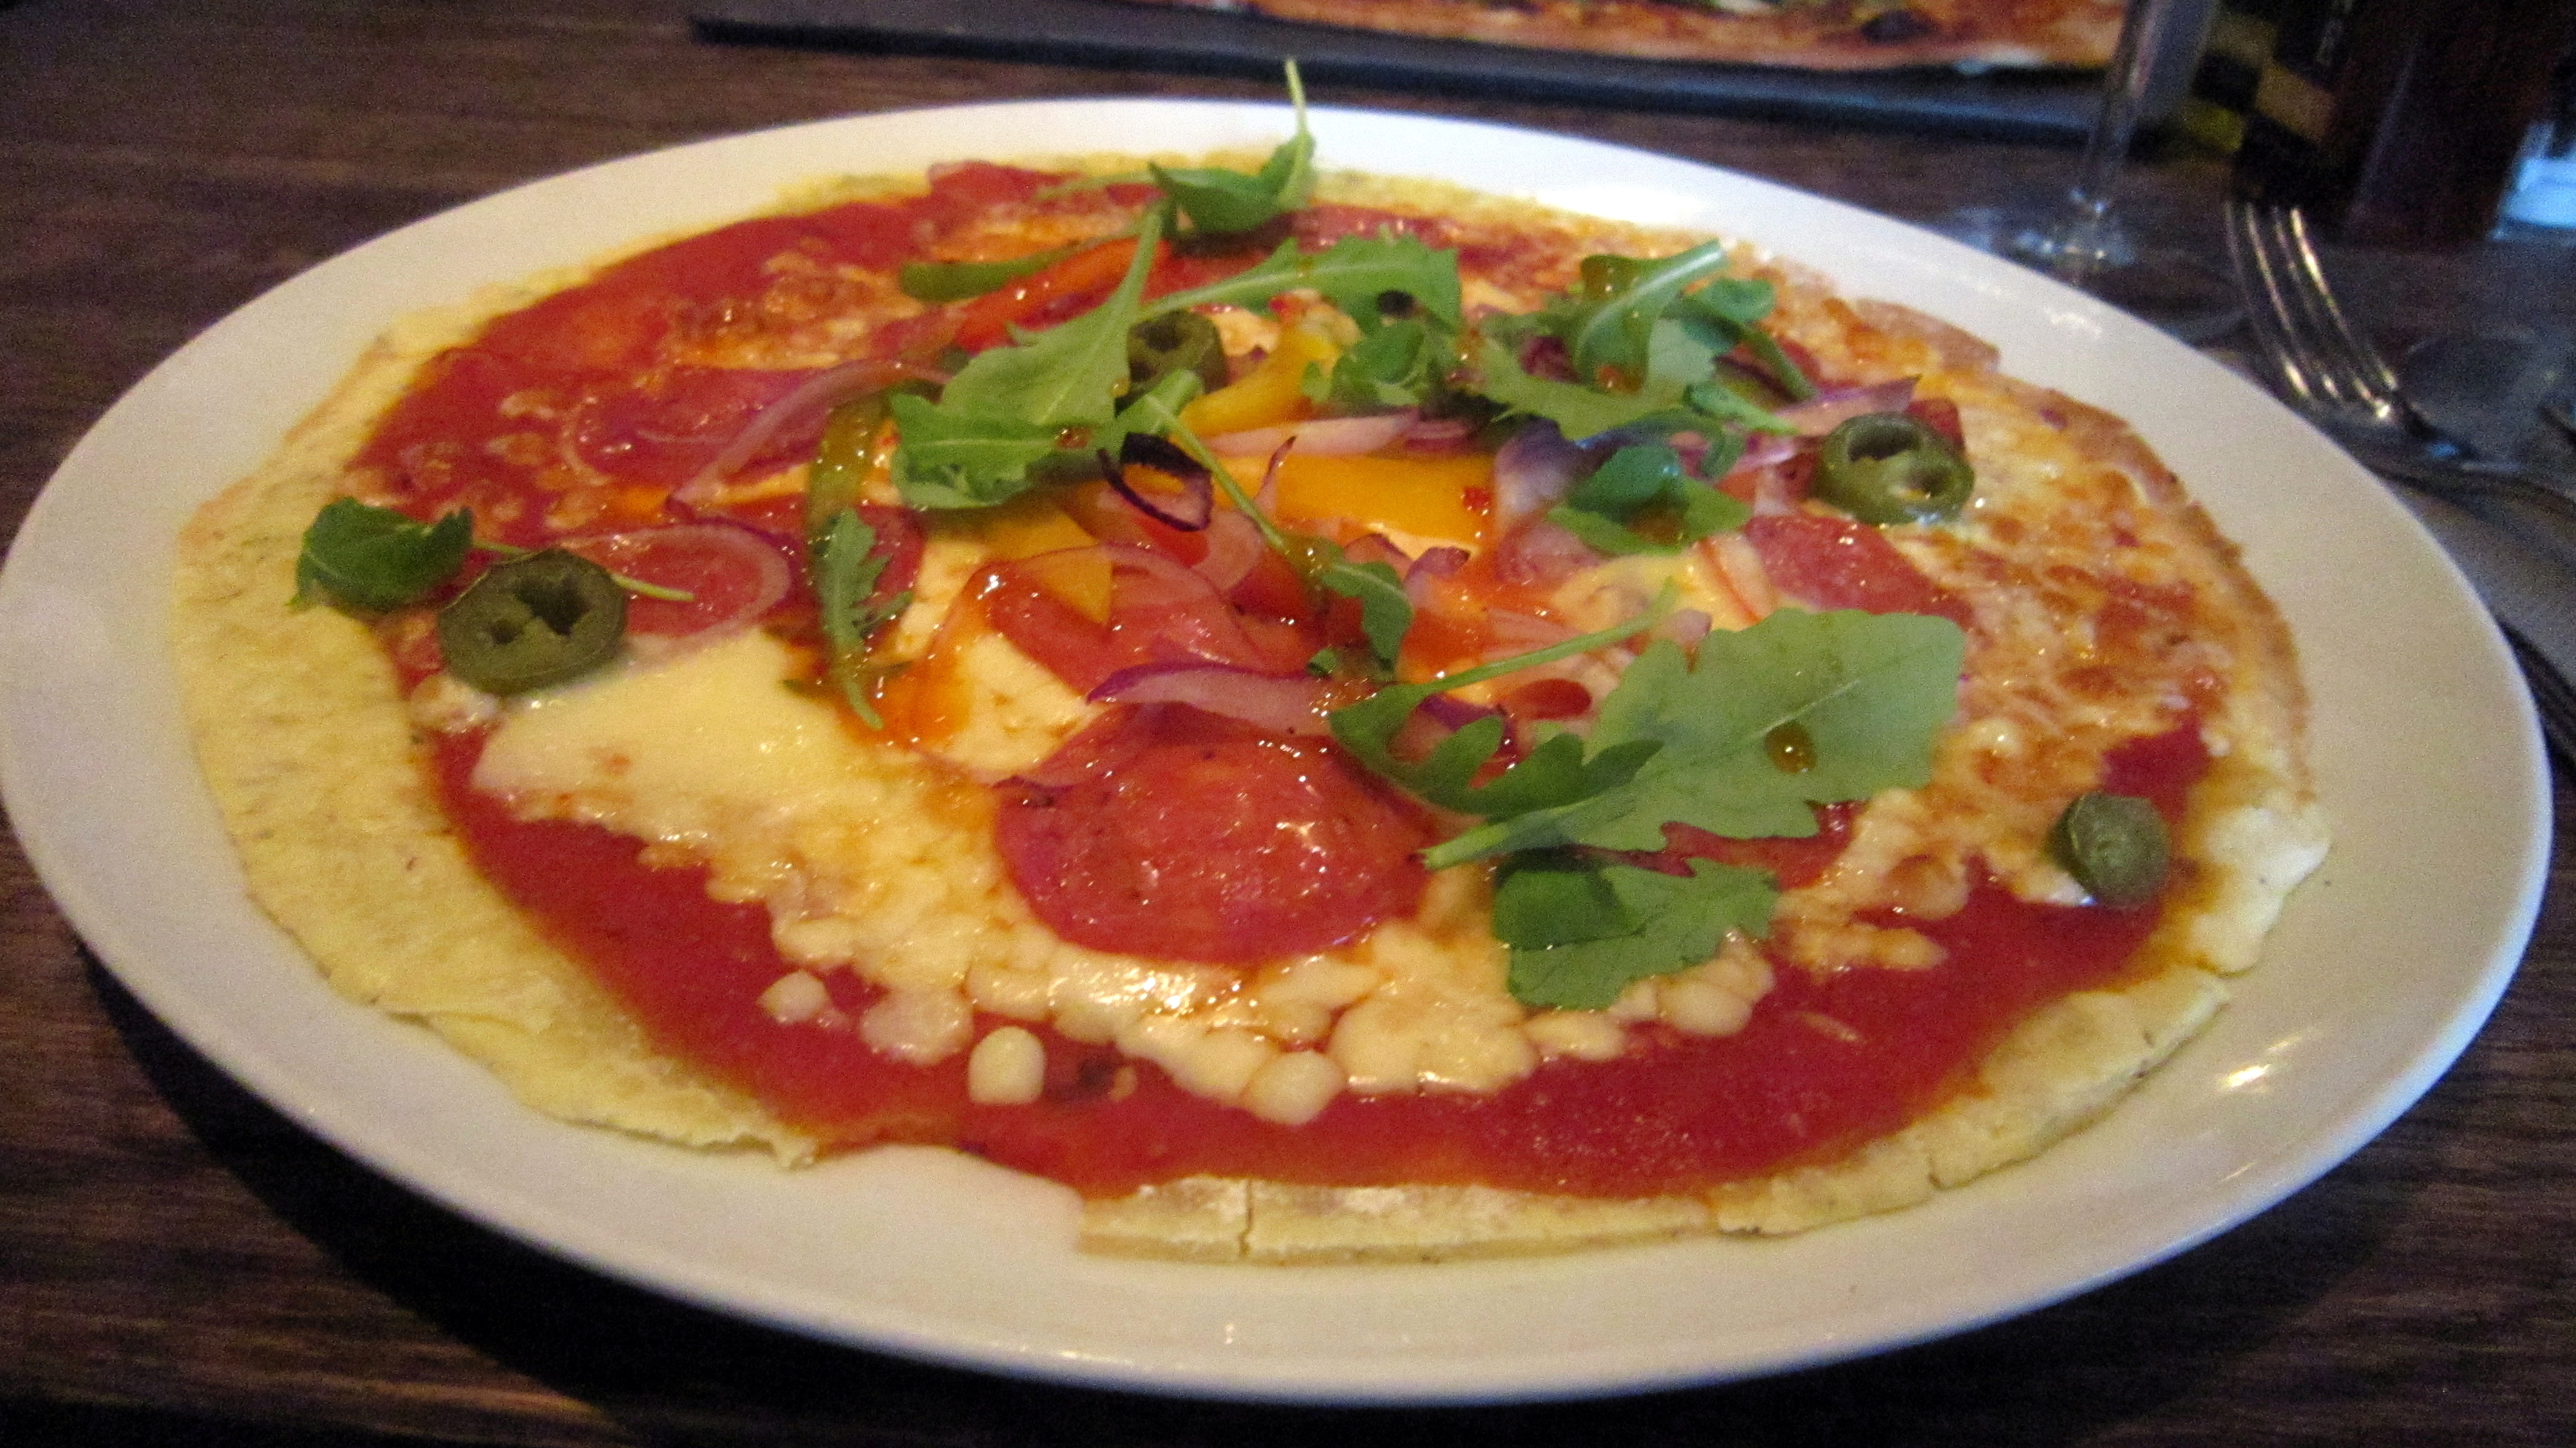 Gluten-free Americano pizza at Woodstone